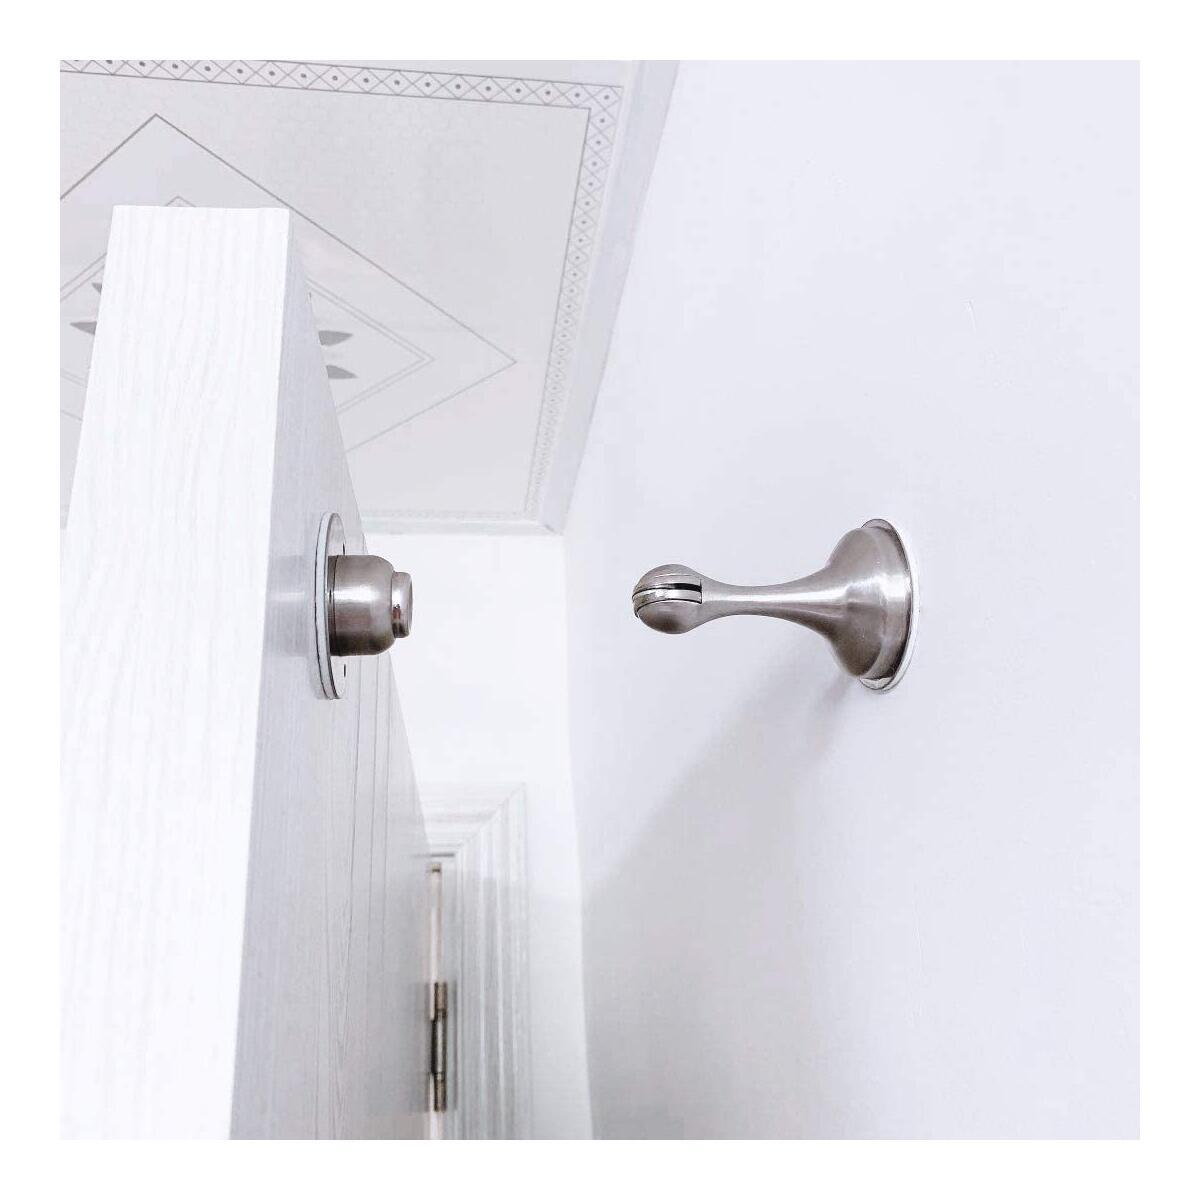 Door stopper set - 2 pack Magnetic door stopper and 4 door bumpers